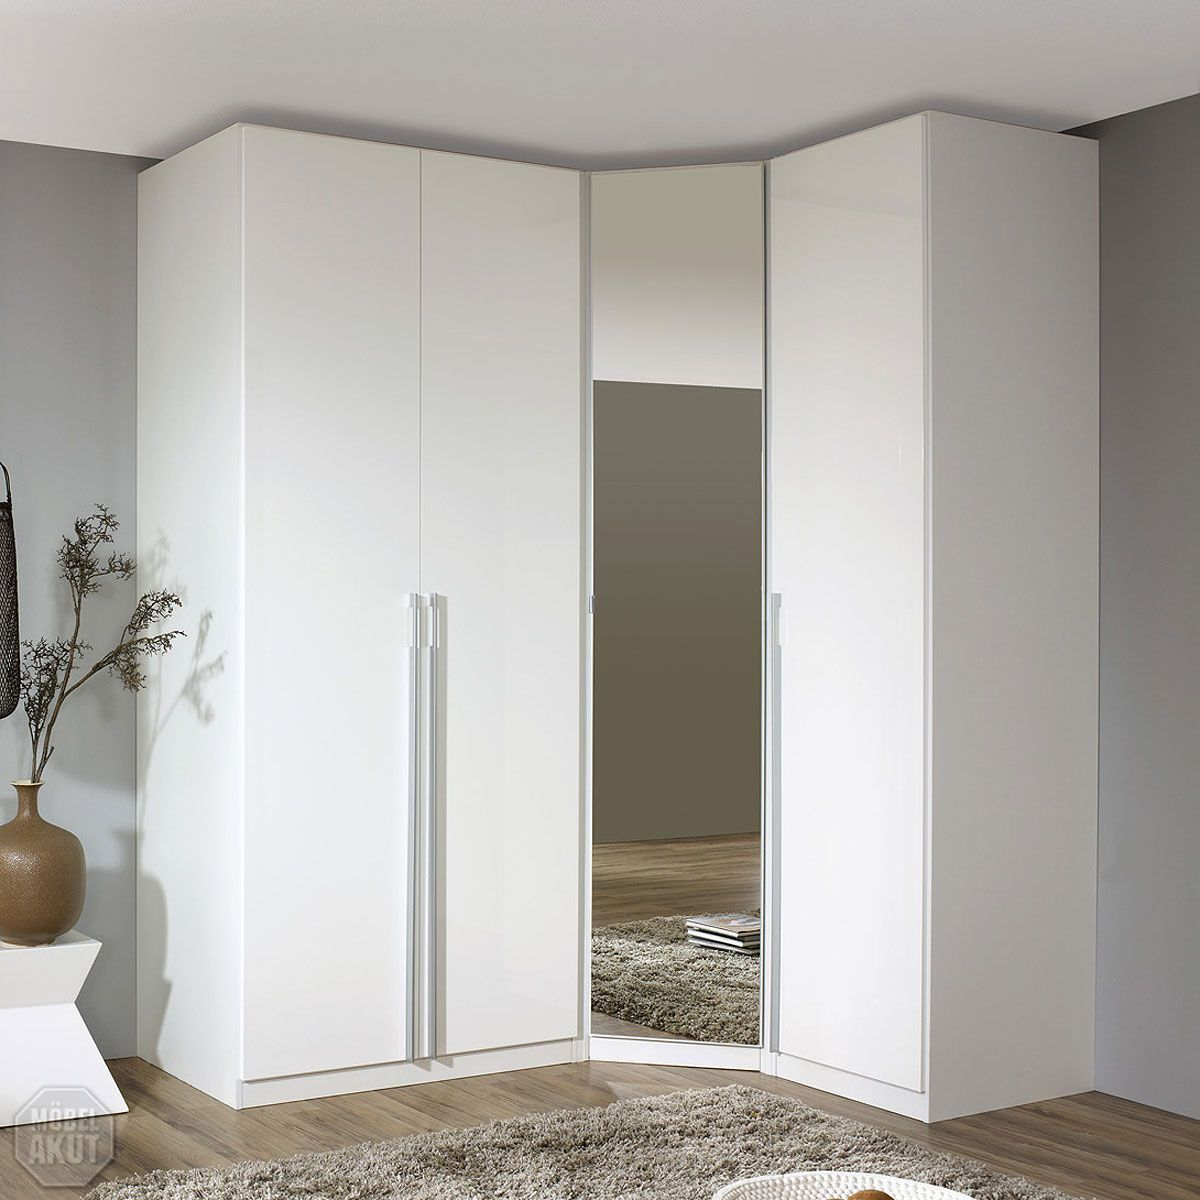 Armoire D Angle Dressing eckschrank schlafzimmer grau gallery images gallery images